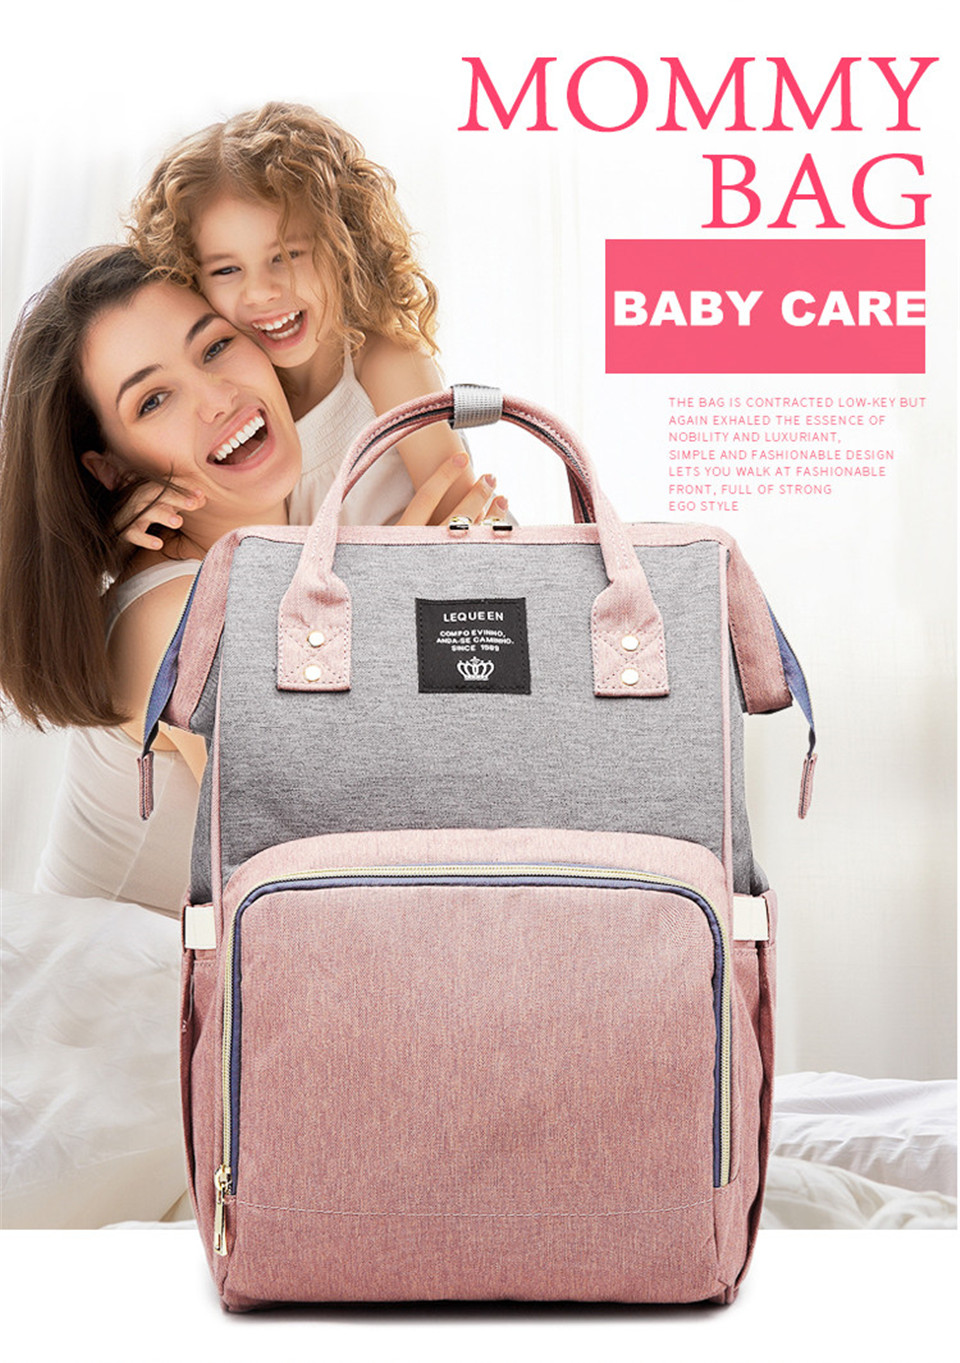 Nappy-Backpack-Bag-Mummy-Waterproof-Outdoor-Travel-Diaper-Bags-Online-Shop-1